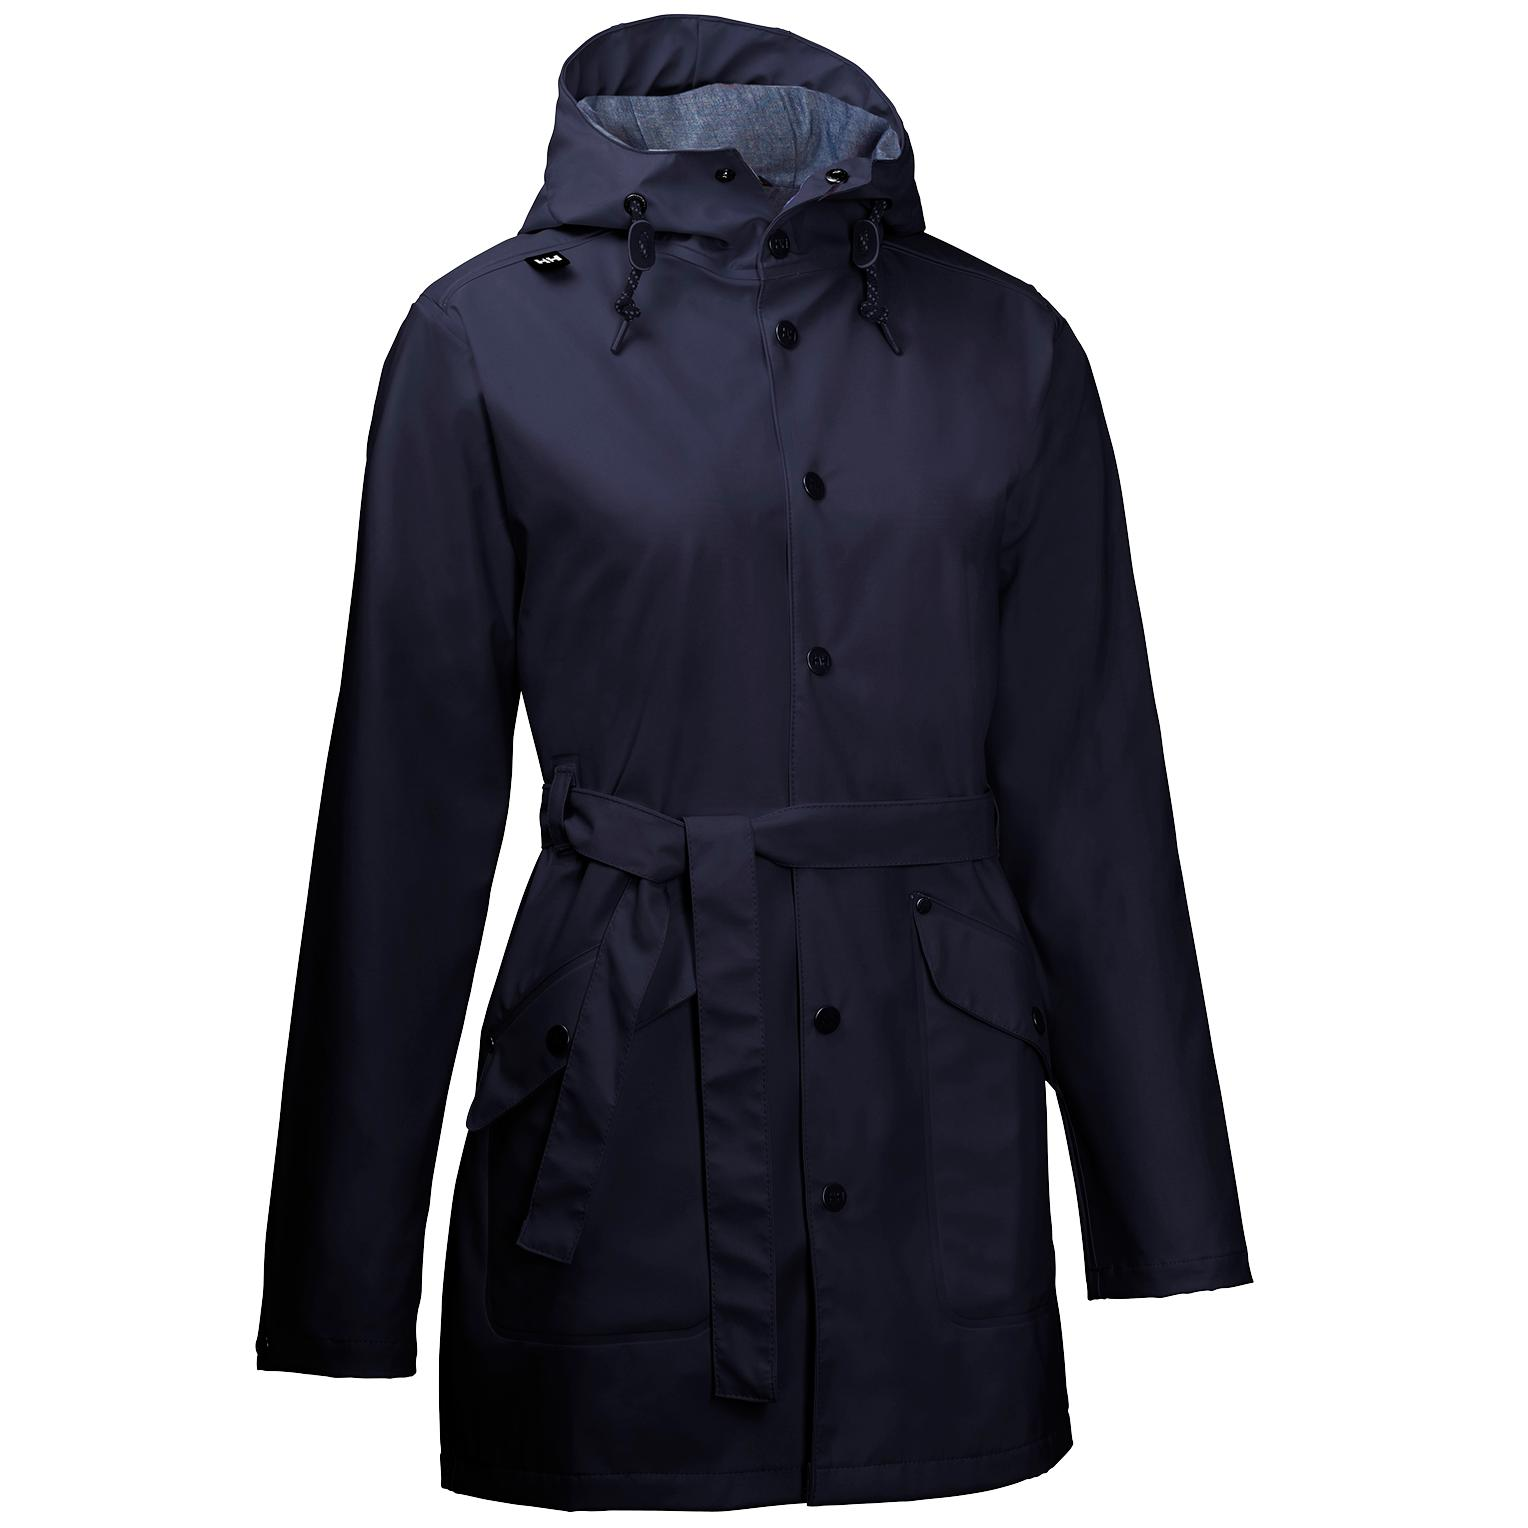 Helly RAIN COAT, Size S/P New with Color Tech